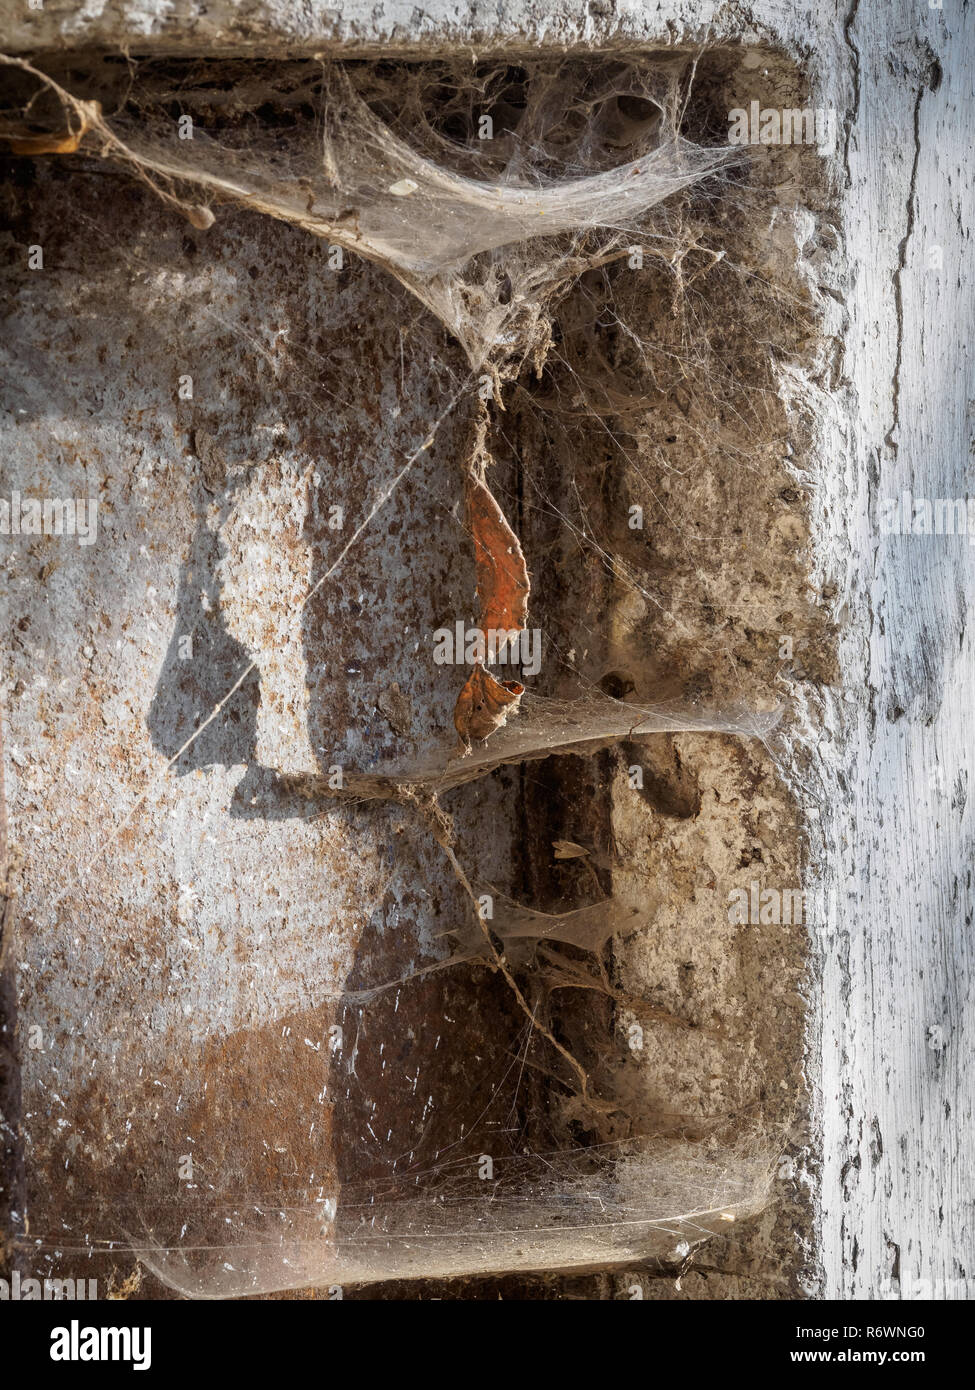 Cobwebs in a dirty wall corner with lots of dust - Stock Image